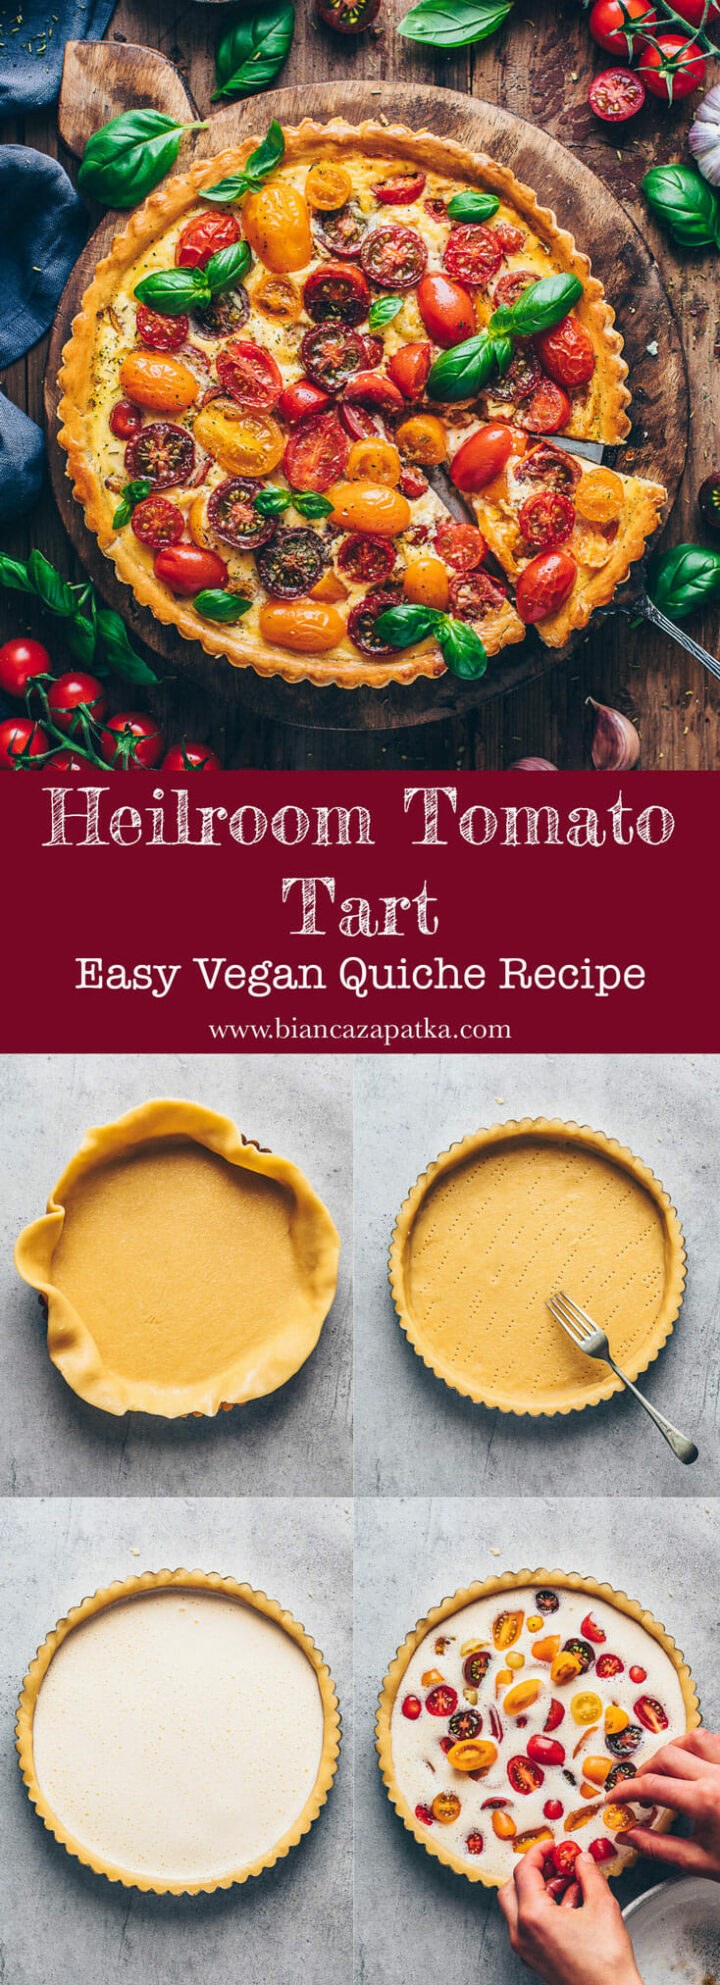 heirlroom tomato quiche tart with basil | food photography & styling step-by-step recipe